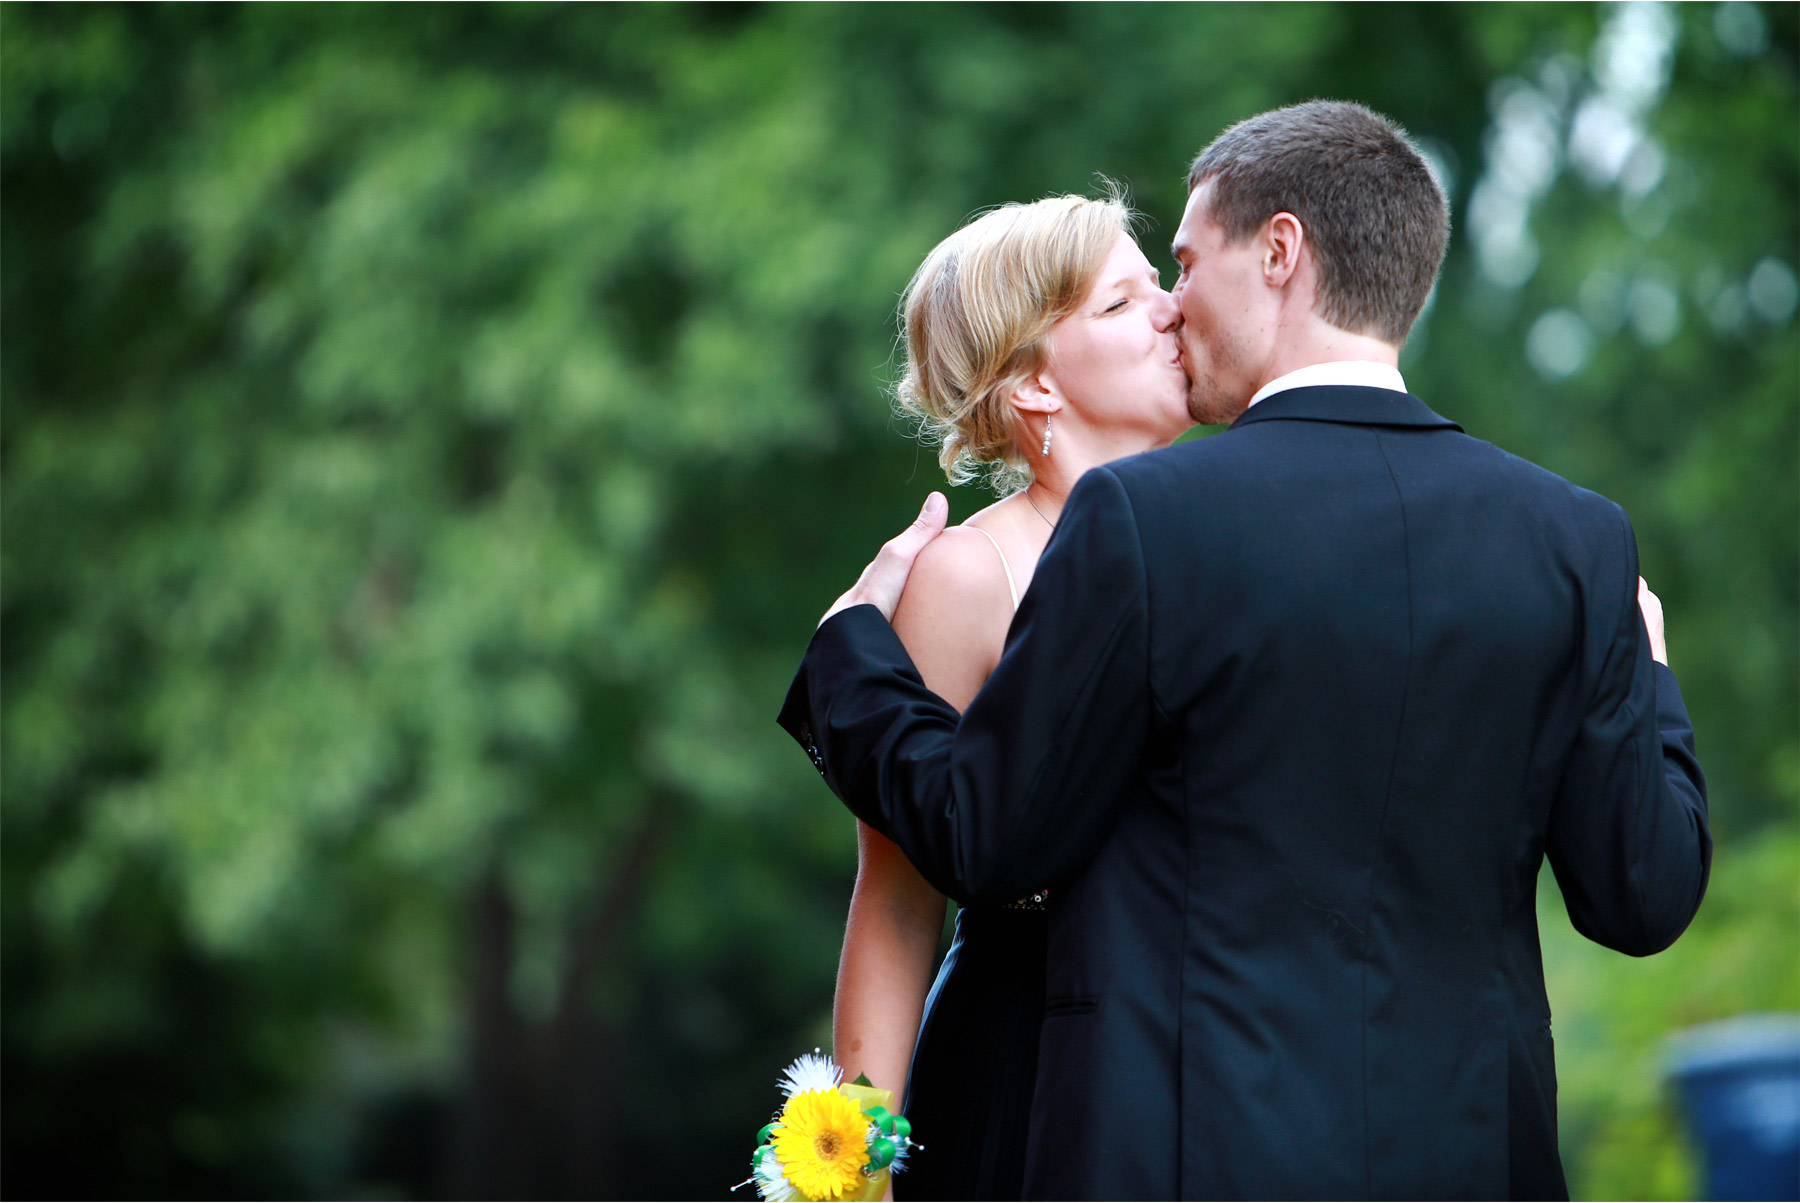 07-Vick-Photography-Proposal-Session-Engagement-Family-Farm-Family-Prom-Dress-Kiss-Kasie-and-Josh.jpg